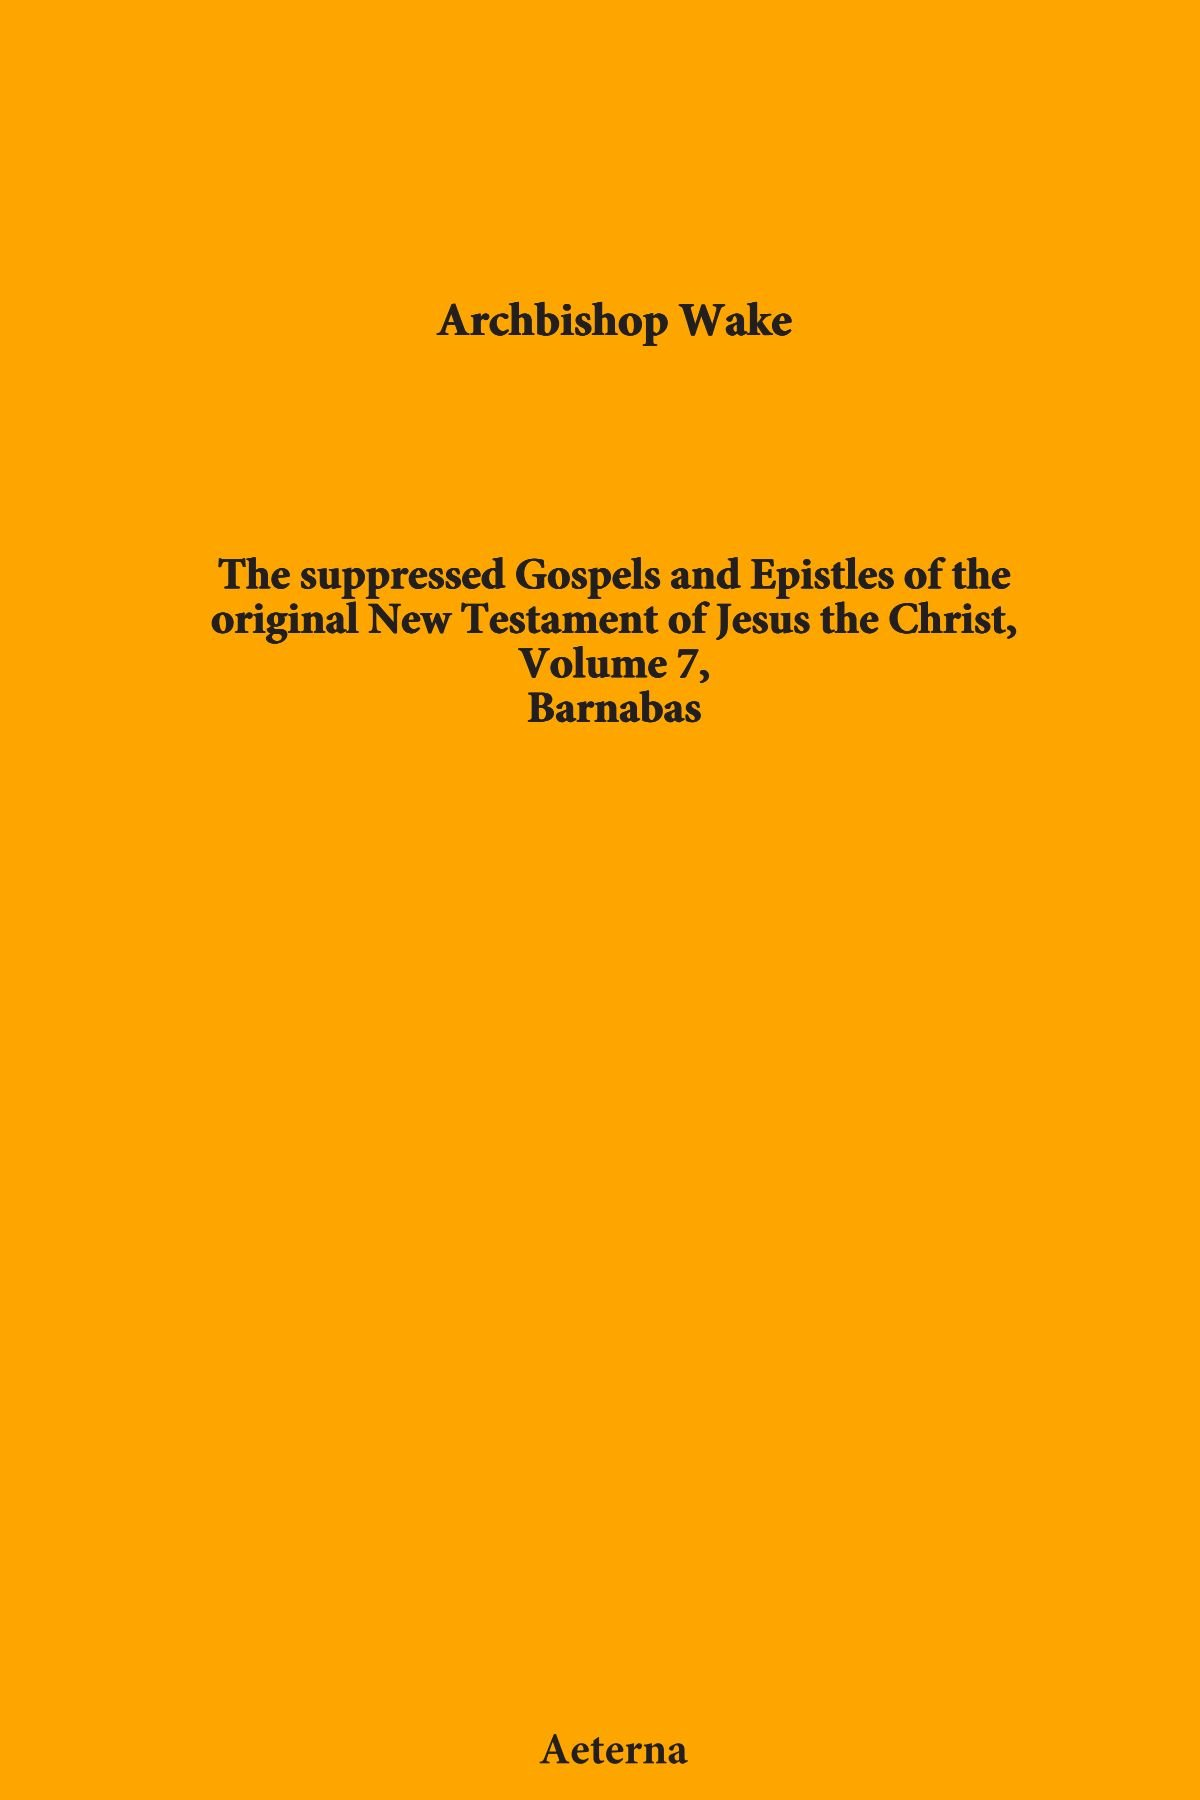 Read Online The suppressed Gospels and Epistles of the original New Testament of Jesus the Christ, Volume 7, Barnabas ebook